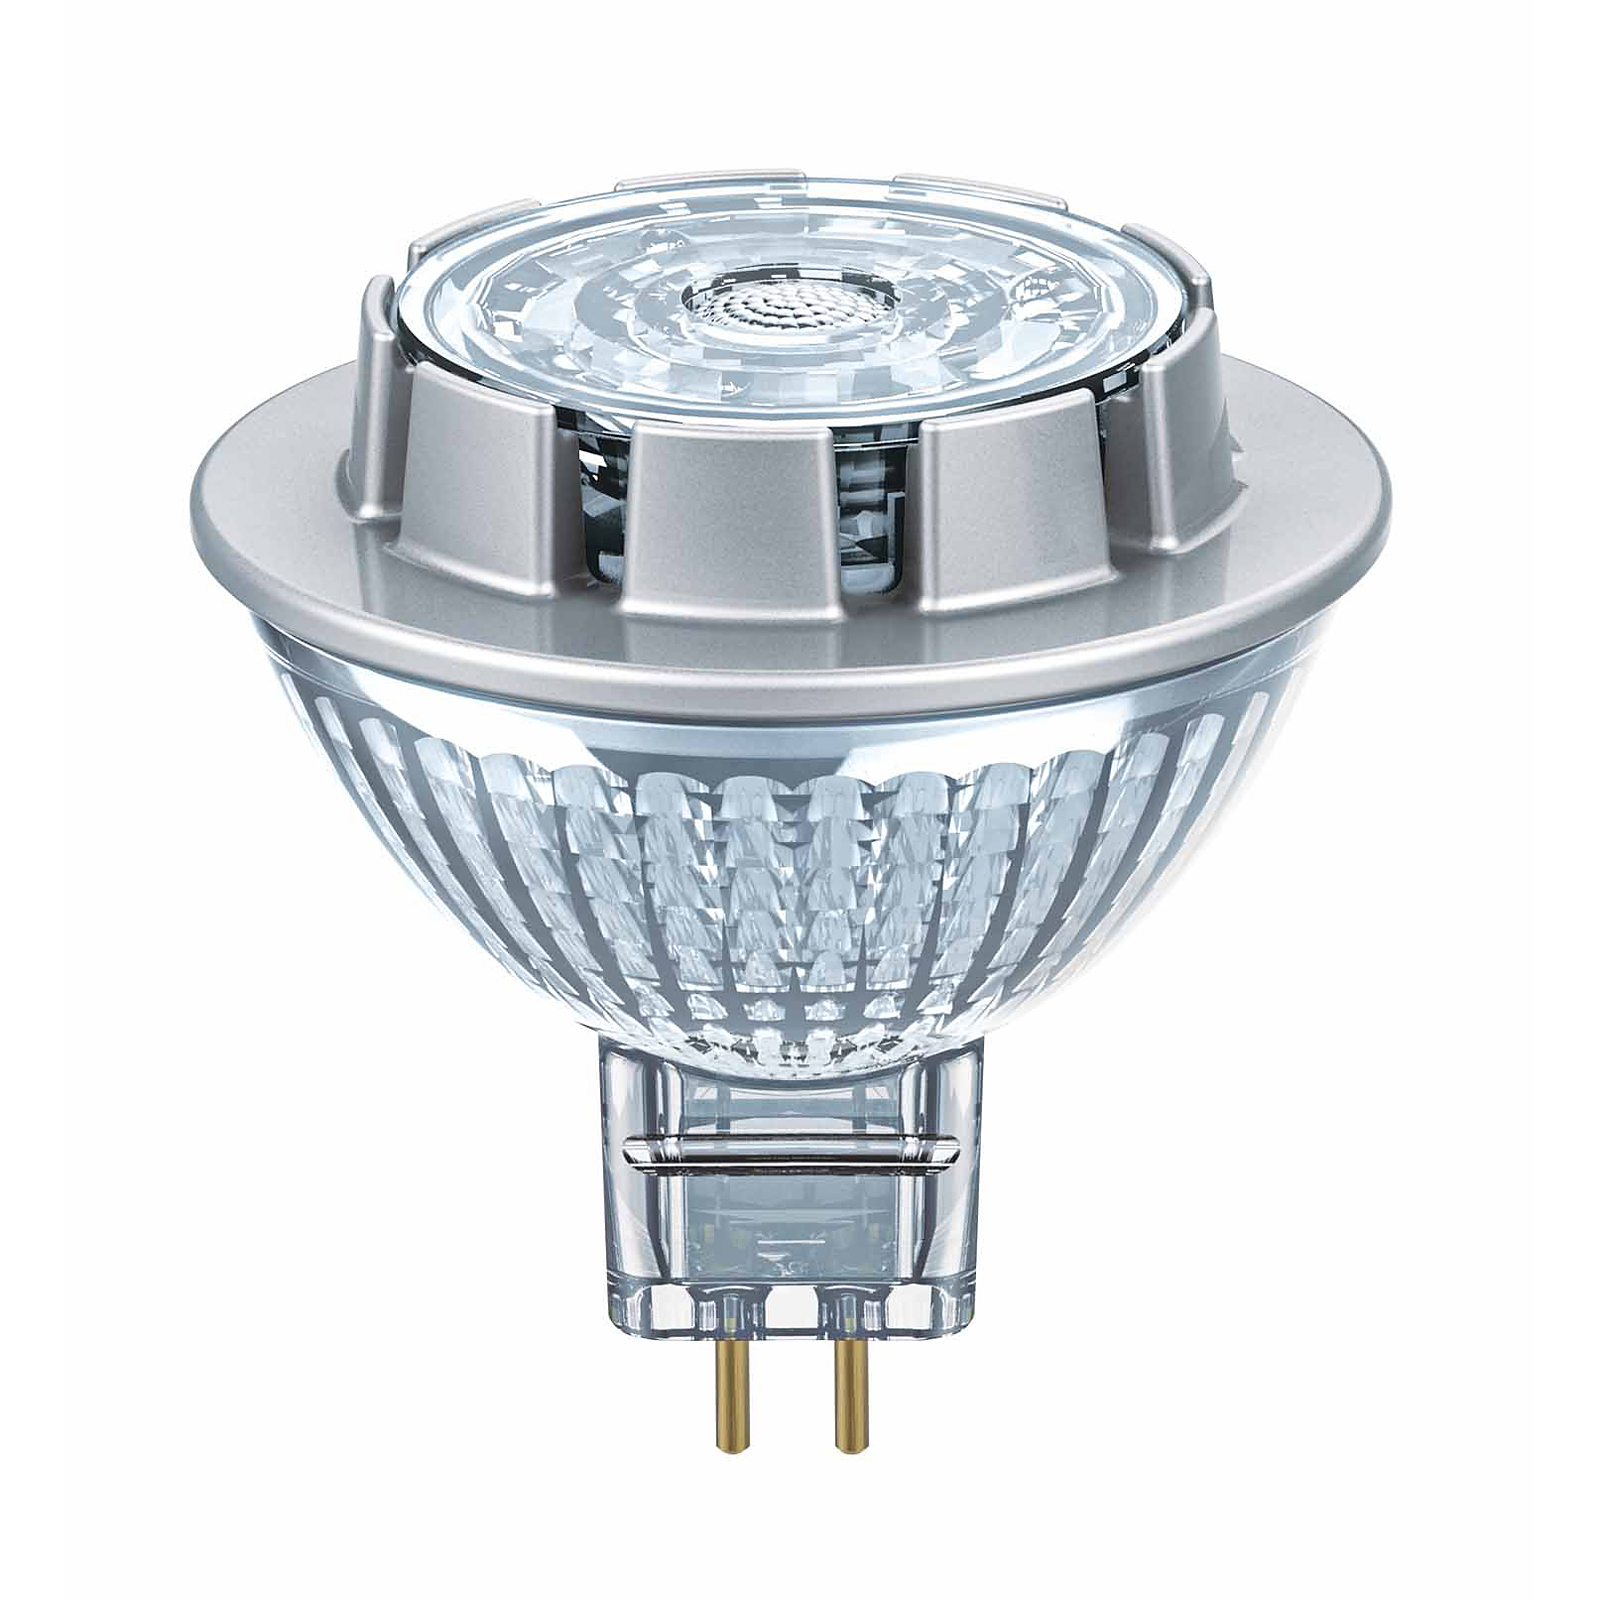 10996-OSRAM-LED-SUPERSTAR-MR16-GU5-3-78-Watt-wie-50-Watt-621-lm-warmweiss-dimmbar-1 Stilvolle sockel Gu5 3 Dekorationen